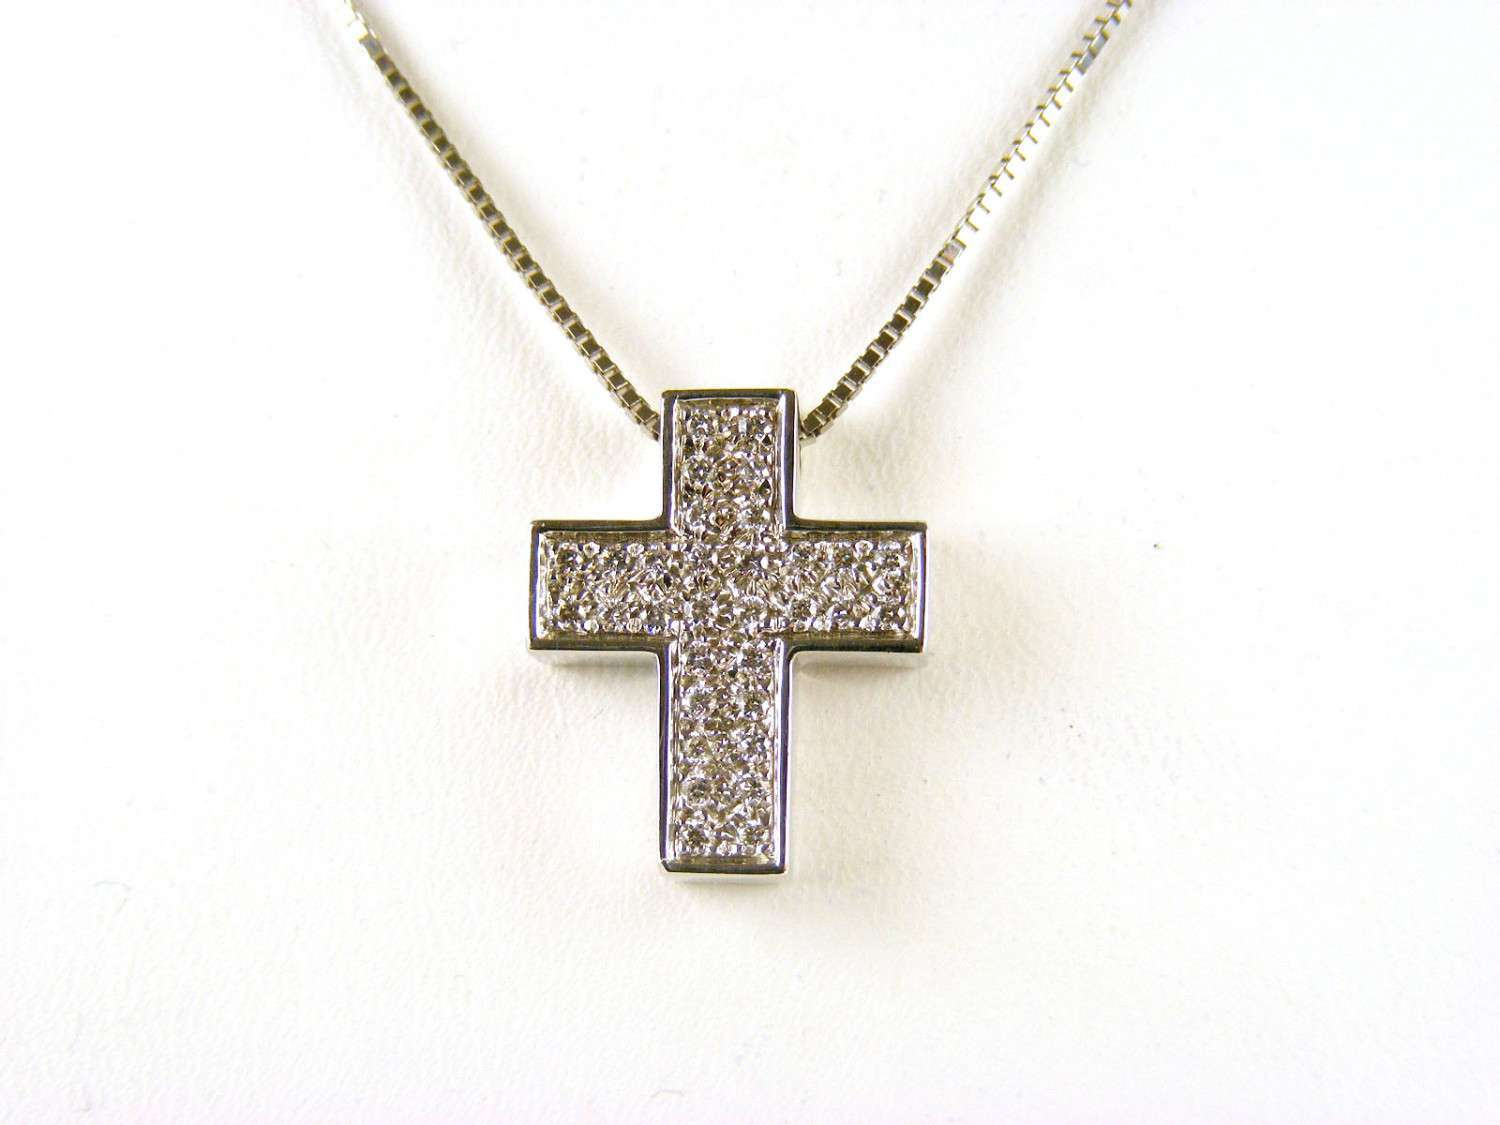 SALVINI NECKLACE CROSS IN 18KT WHITE GOLD WITH DIAMONDS